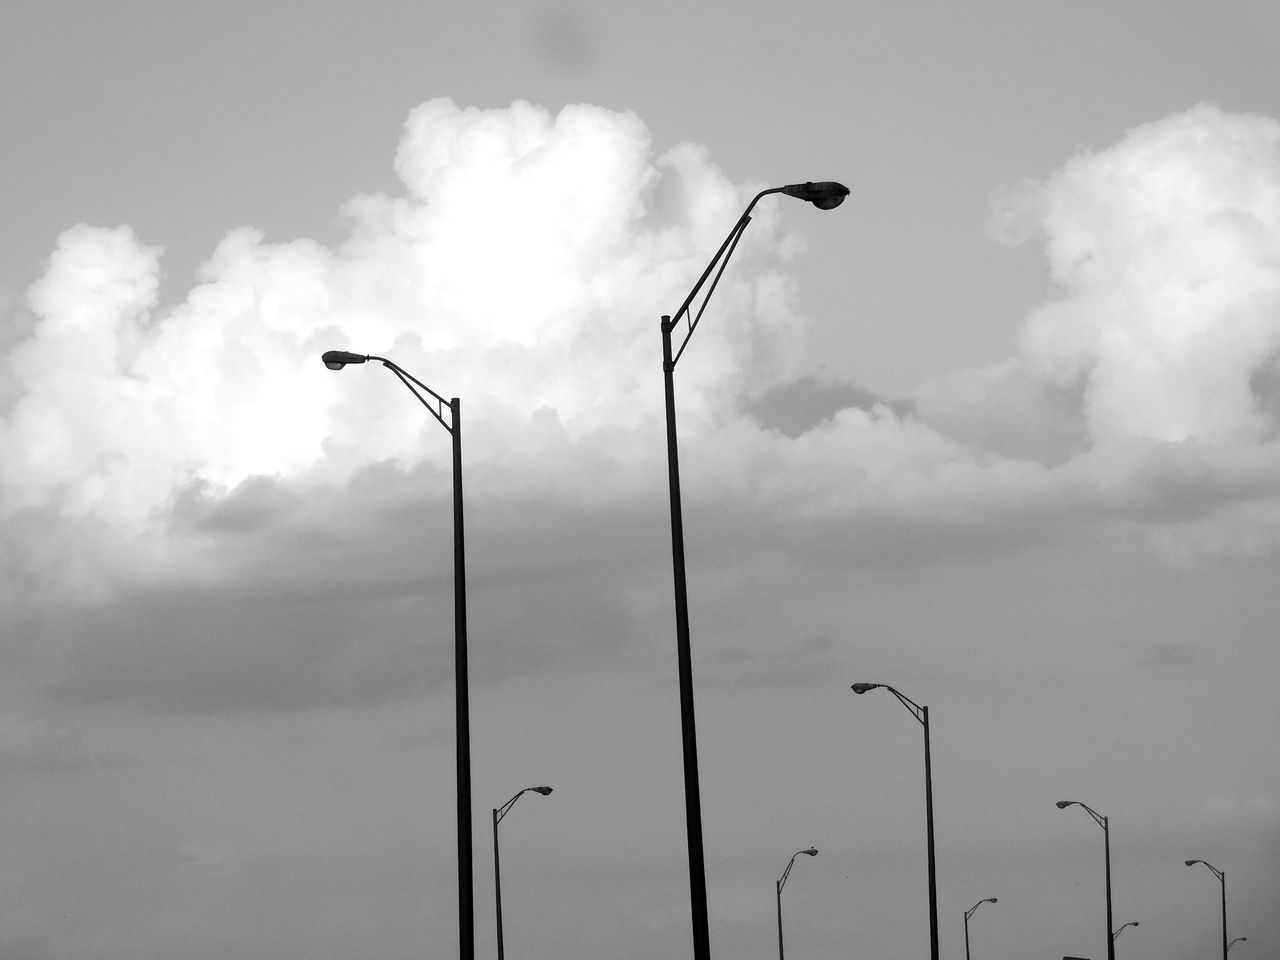 Monochrome Photography Blackandwhite Lightposts Darkness And Light On The Road Driving Streetphotography Notes From The Underground City Urban Exploration Highway I75 Traveling Tampa Tampa Fl Florida Random Acts Of Photography Floridaphotographer Through The Window Pattern Pieces Tampa, FL Sky